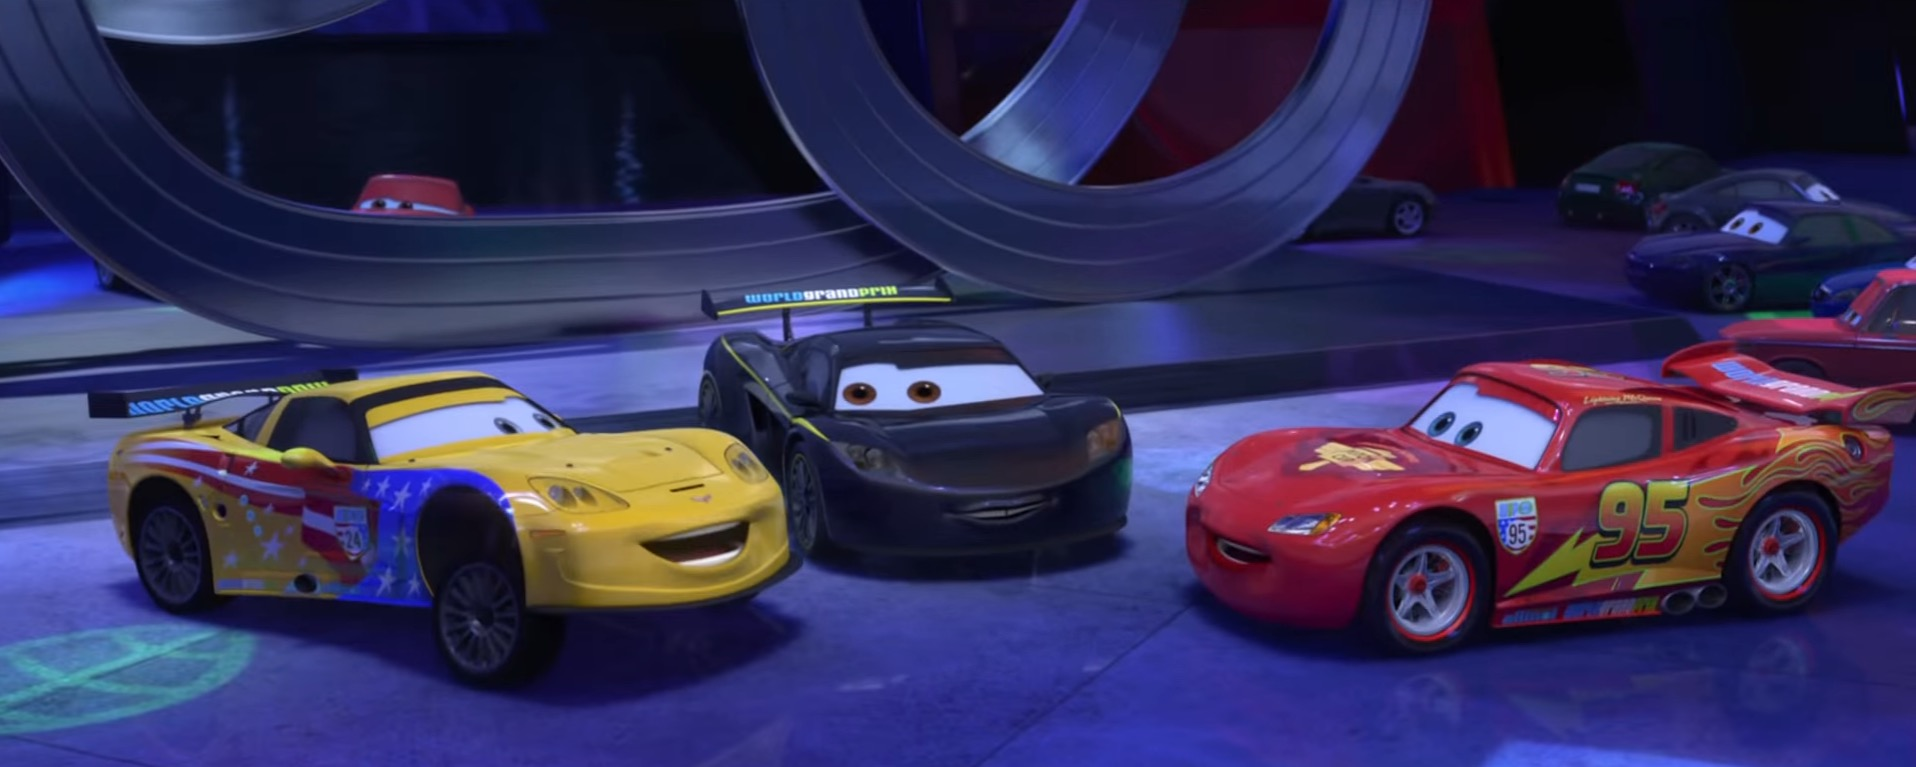 Cars Pixar Lewis Hamilton Lewis Hamilton Will Be A Voice In Cars 3 Autoevolution